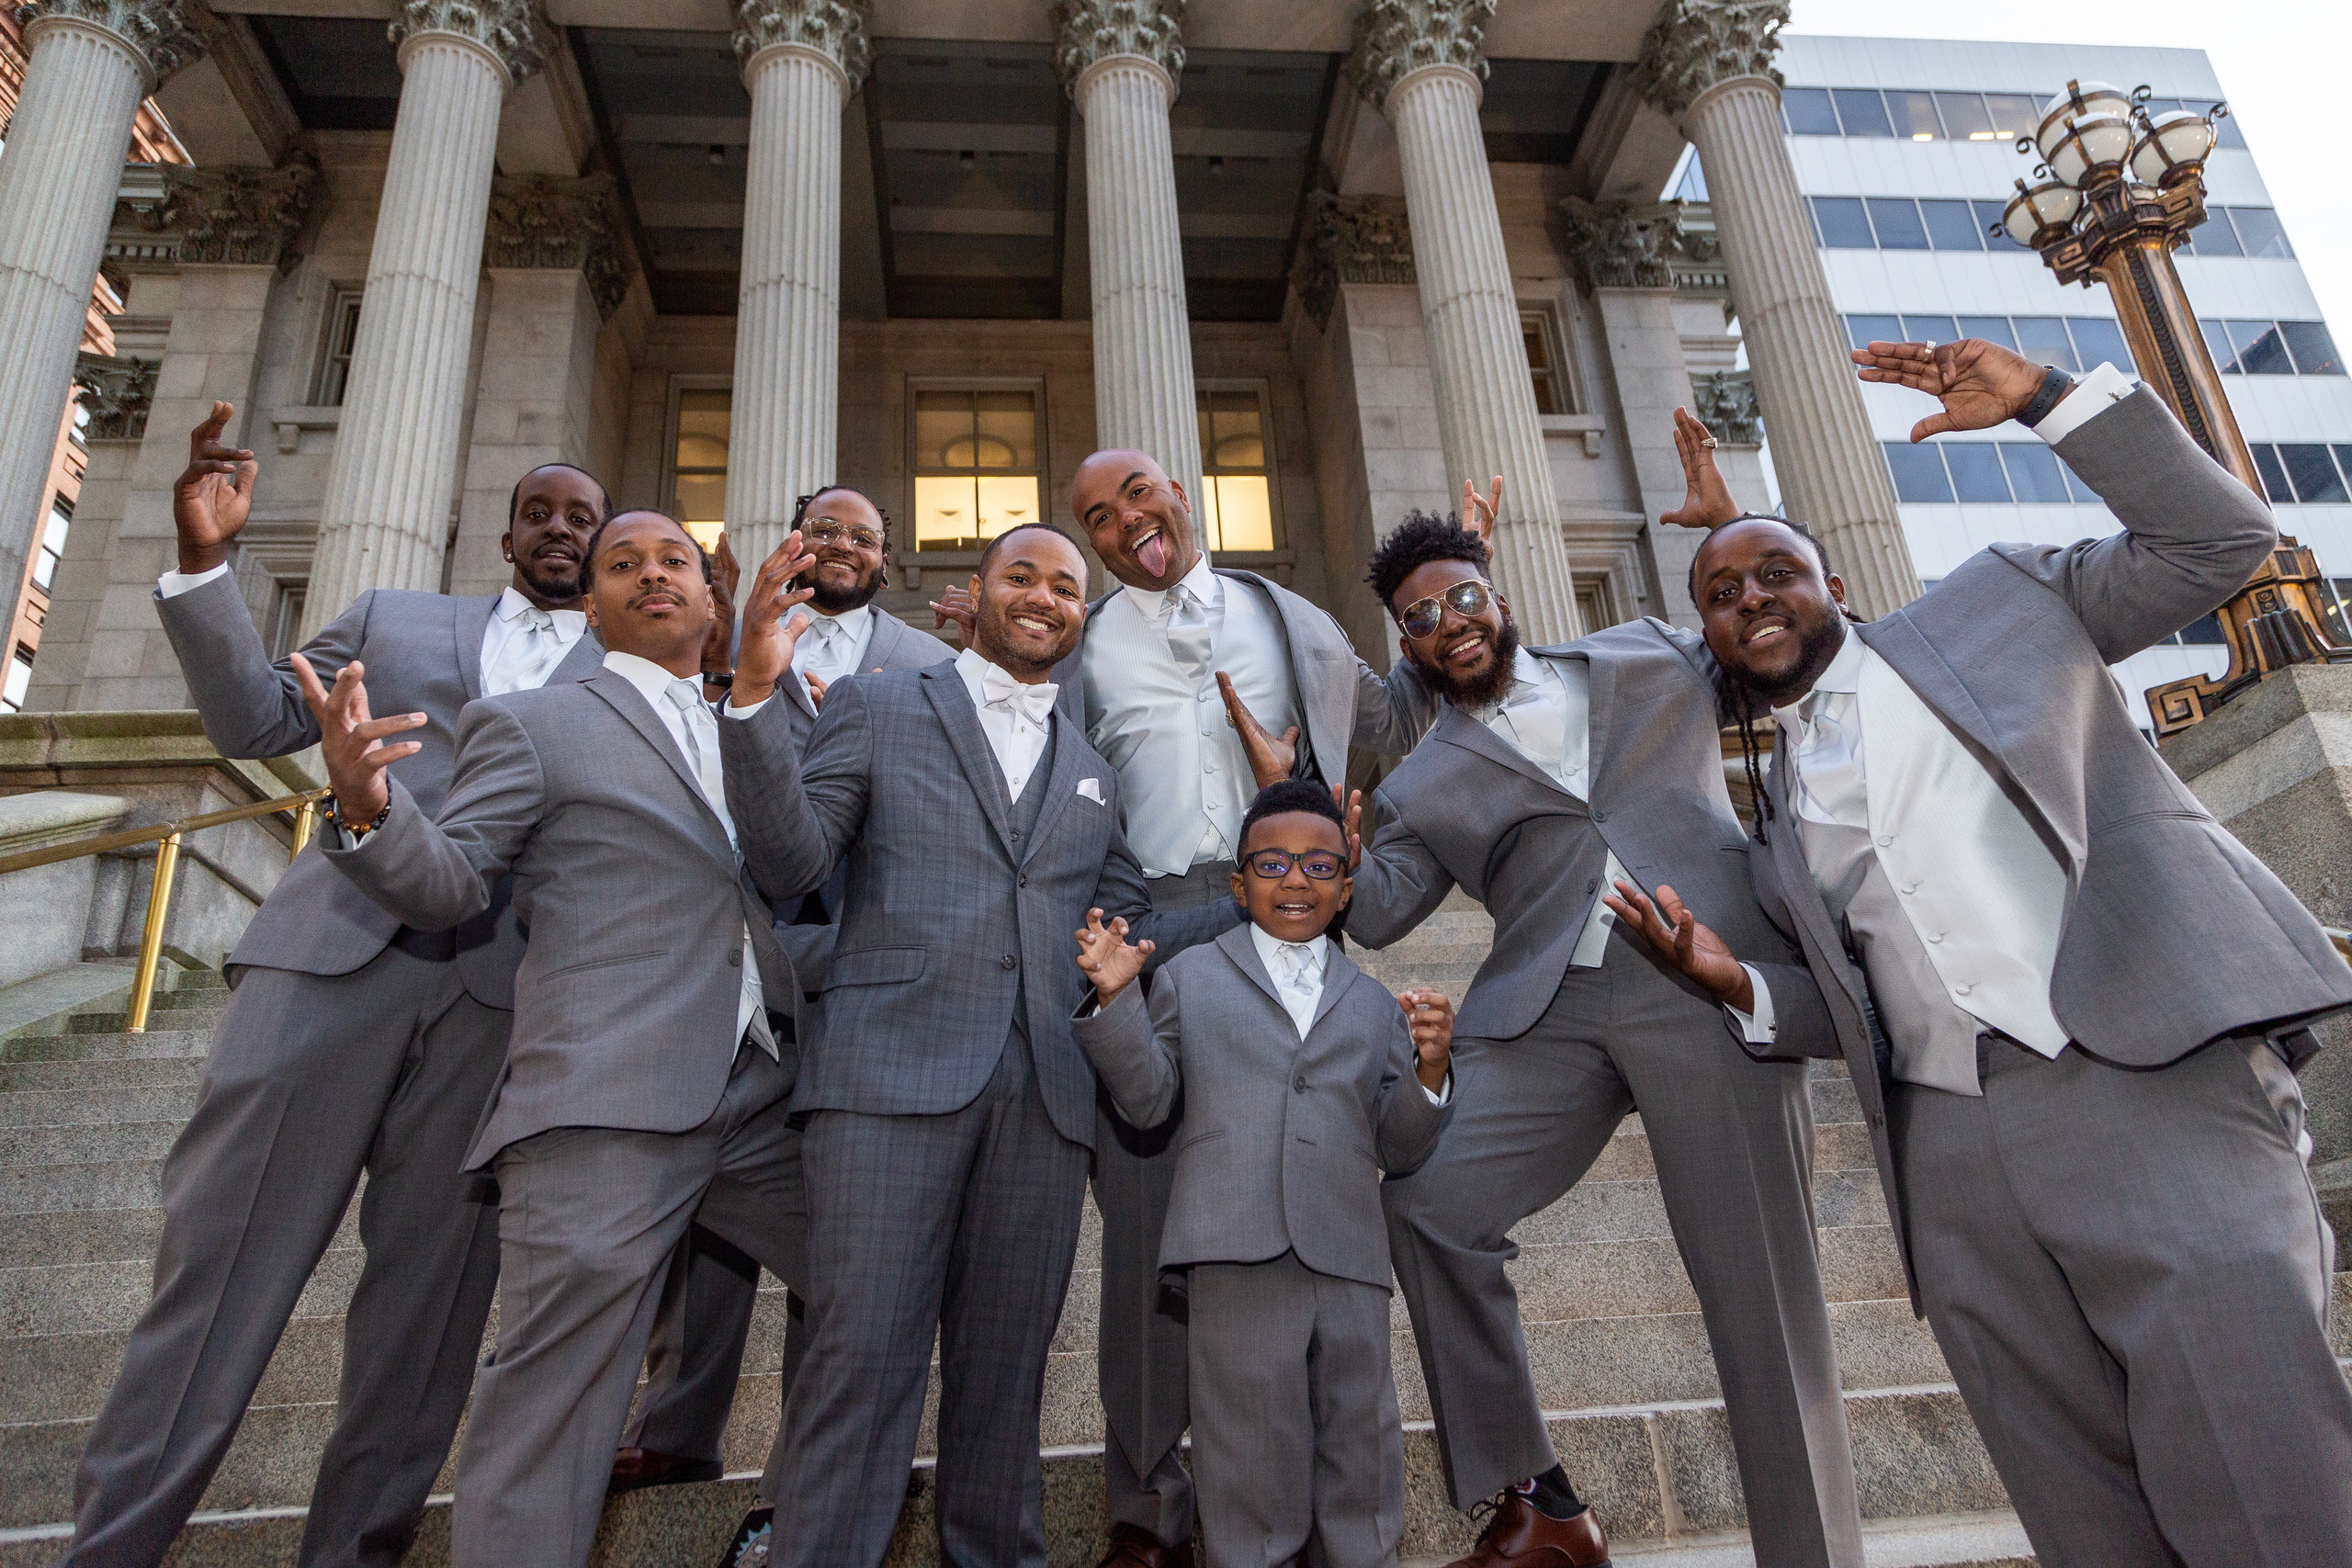 The groom and his groomsmen pose for a fun pre-wedding portrait before the wedding at the Hilton Main in Norfolk, Virginia.